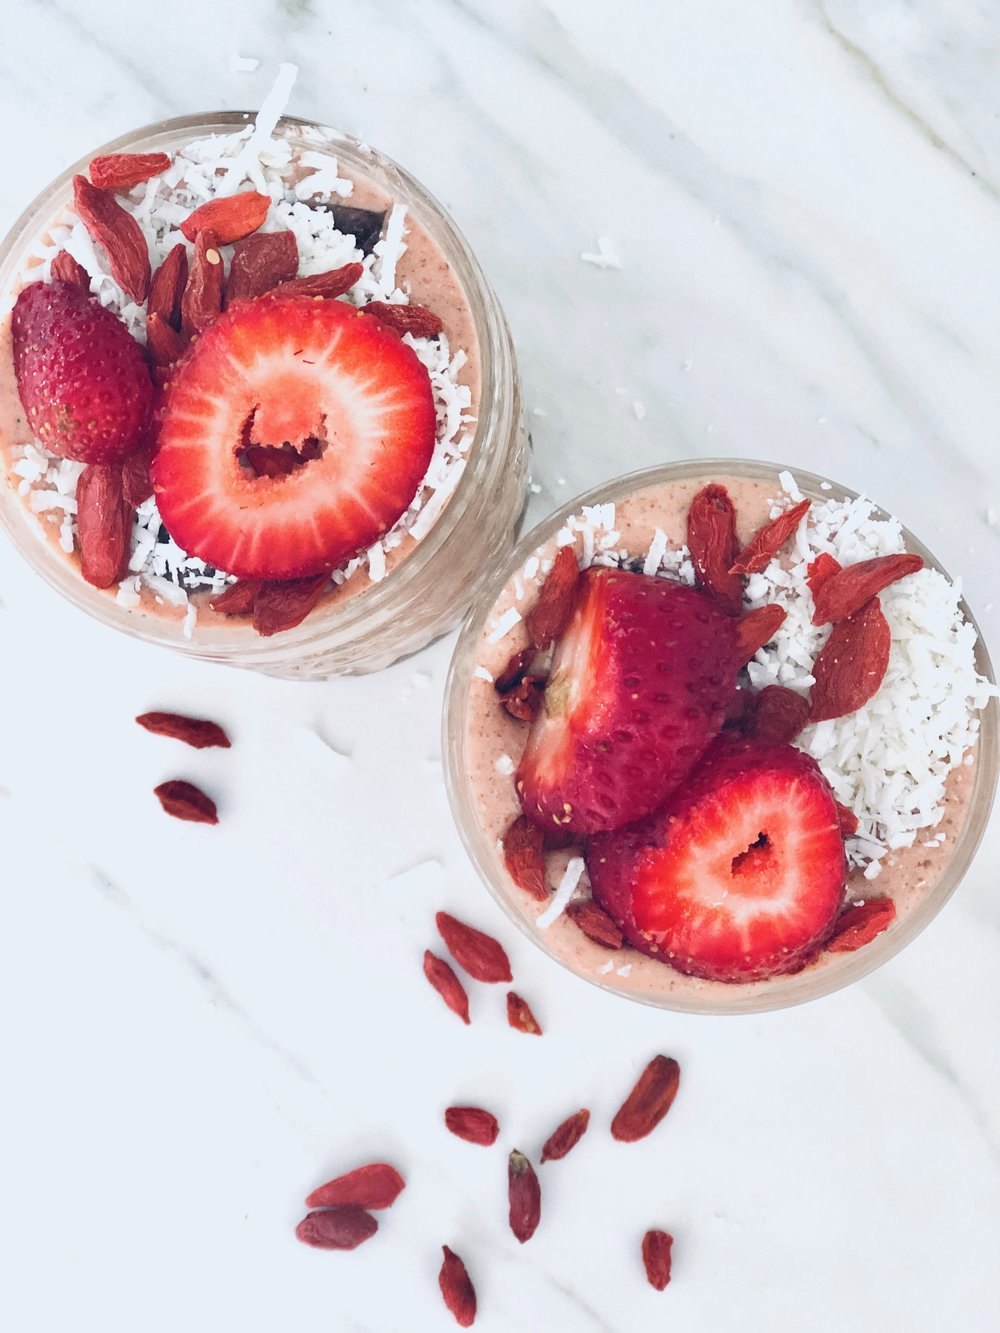 - Ingredients1 cup almond mylk 1 serve of protein 1 serve of collagen1 heaped tsp hazelnut butter 1 carrot1 passionfruit½ banana and frozen strawberries 2 tbs chia MethodBlend ingredients and add your fave toppings (fresh strawberries, cacao nibs) . ENJOY!